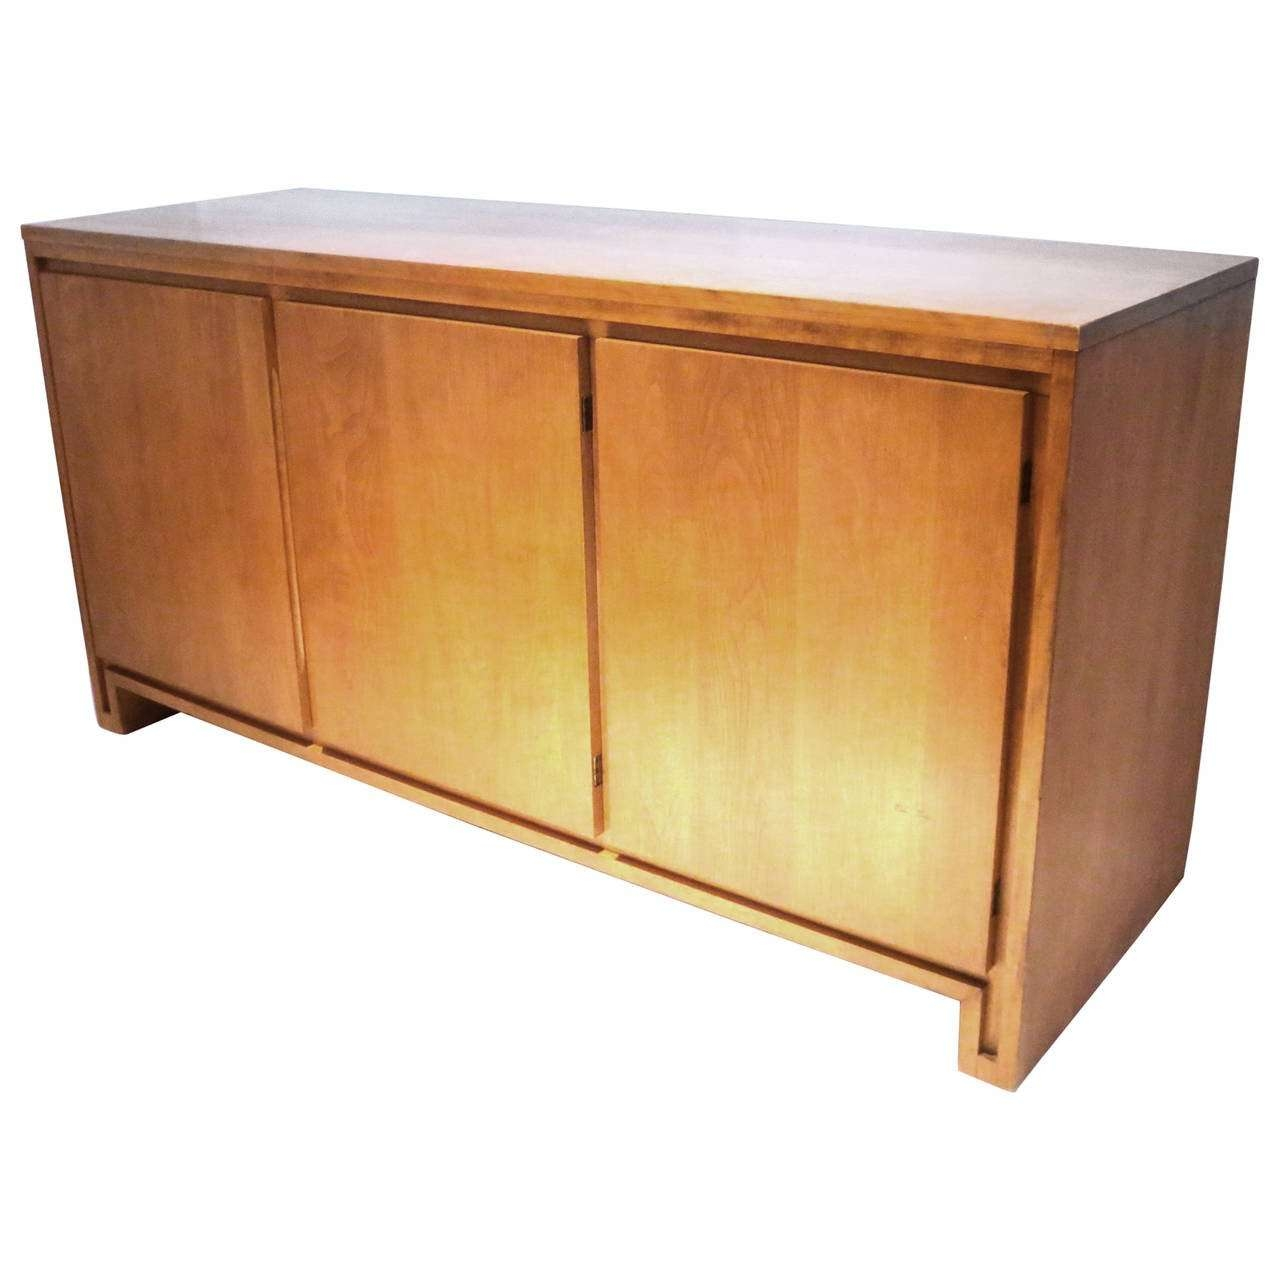 1950S Solid Maple Sideboard Or Credenza Designrussel Wright Within Maple Sideboards (View 1 of 20)